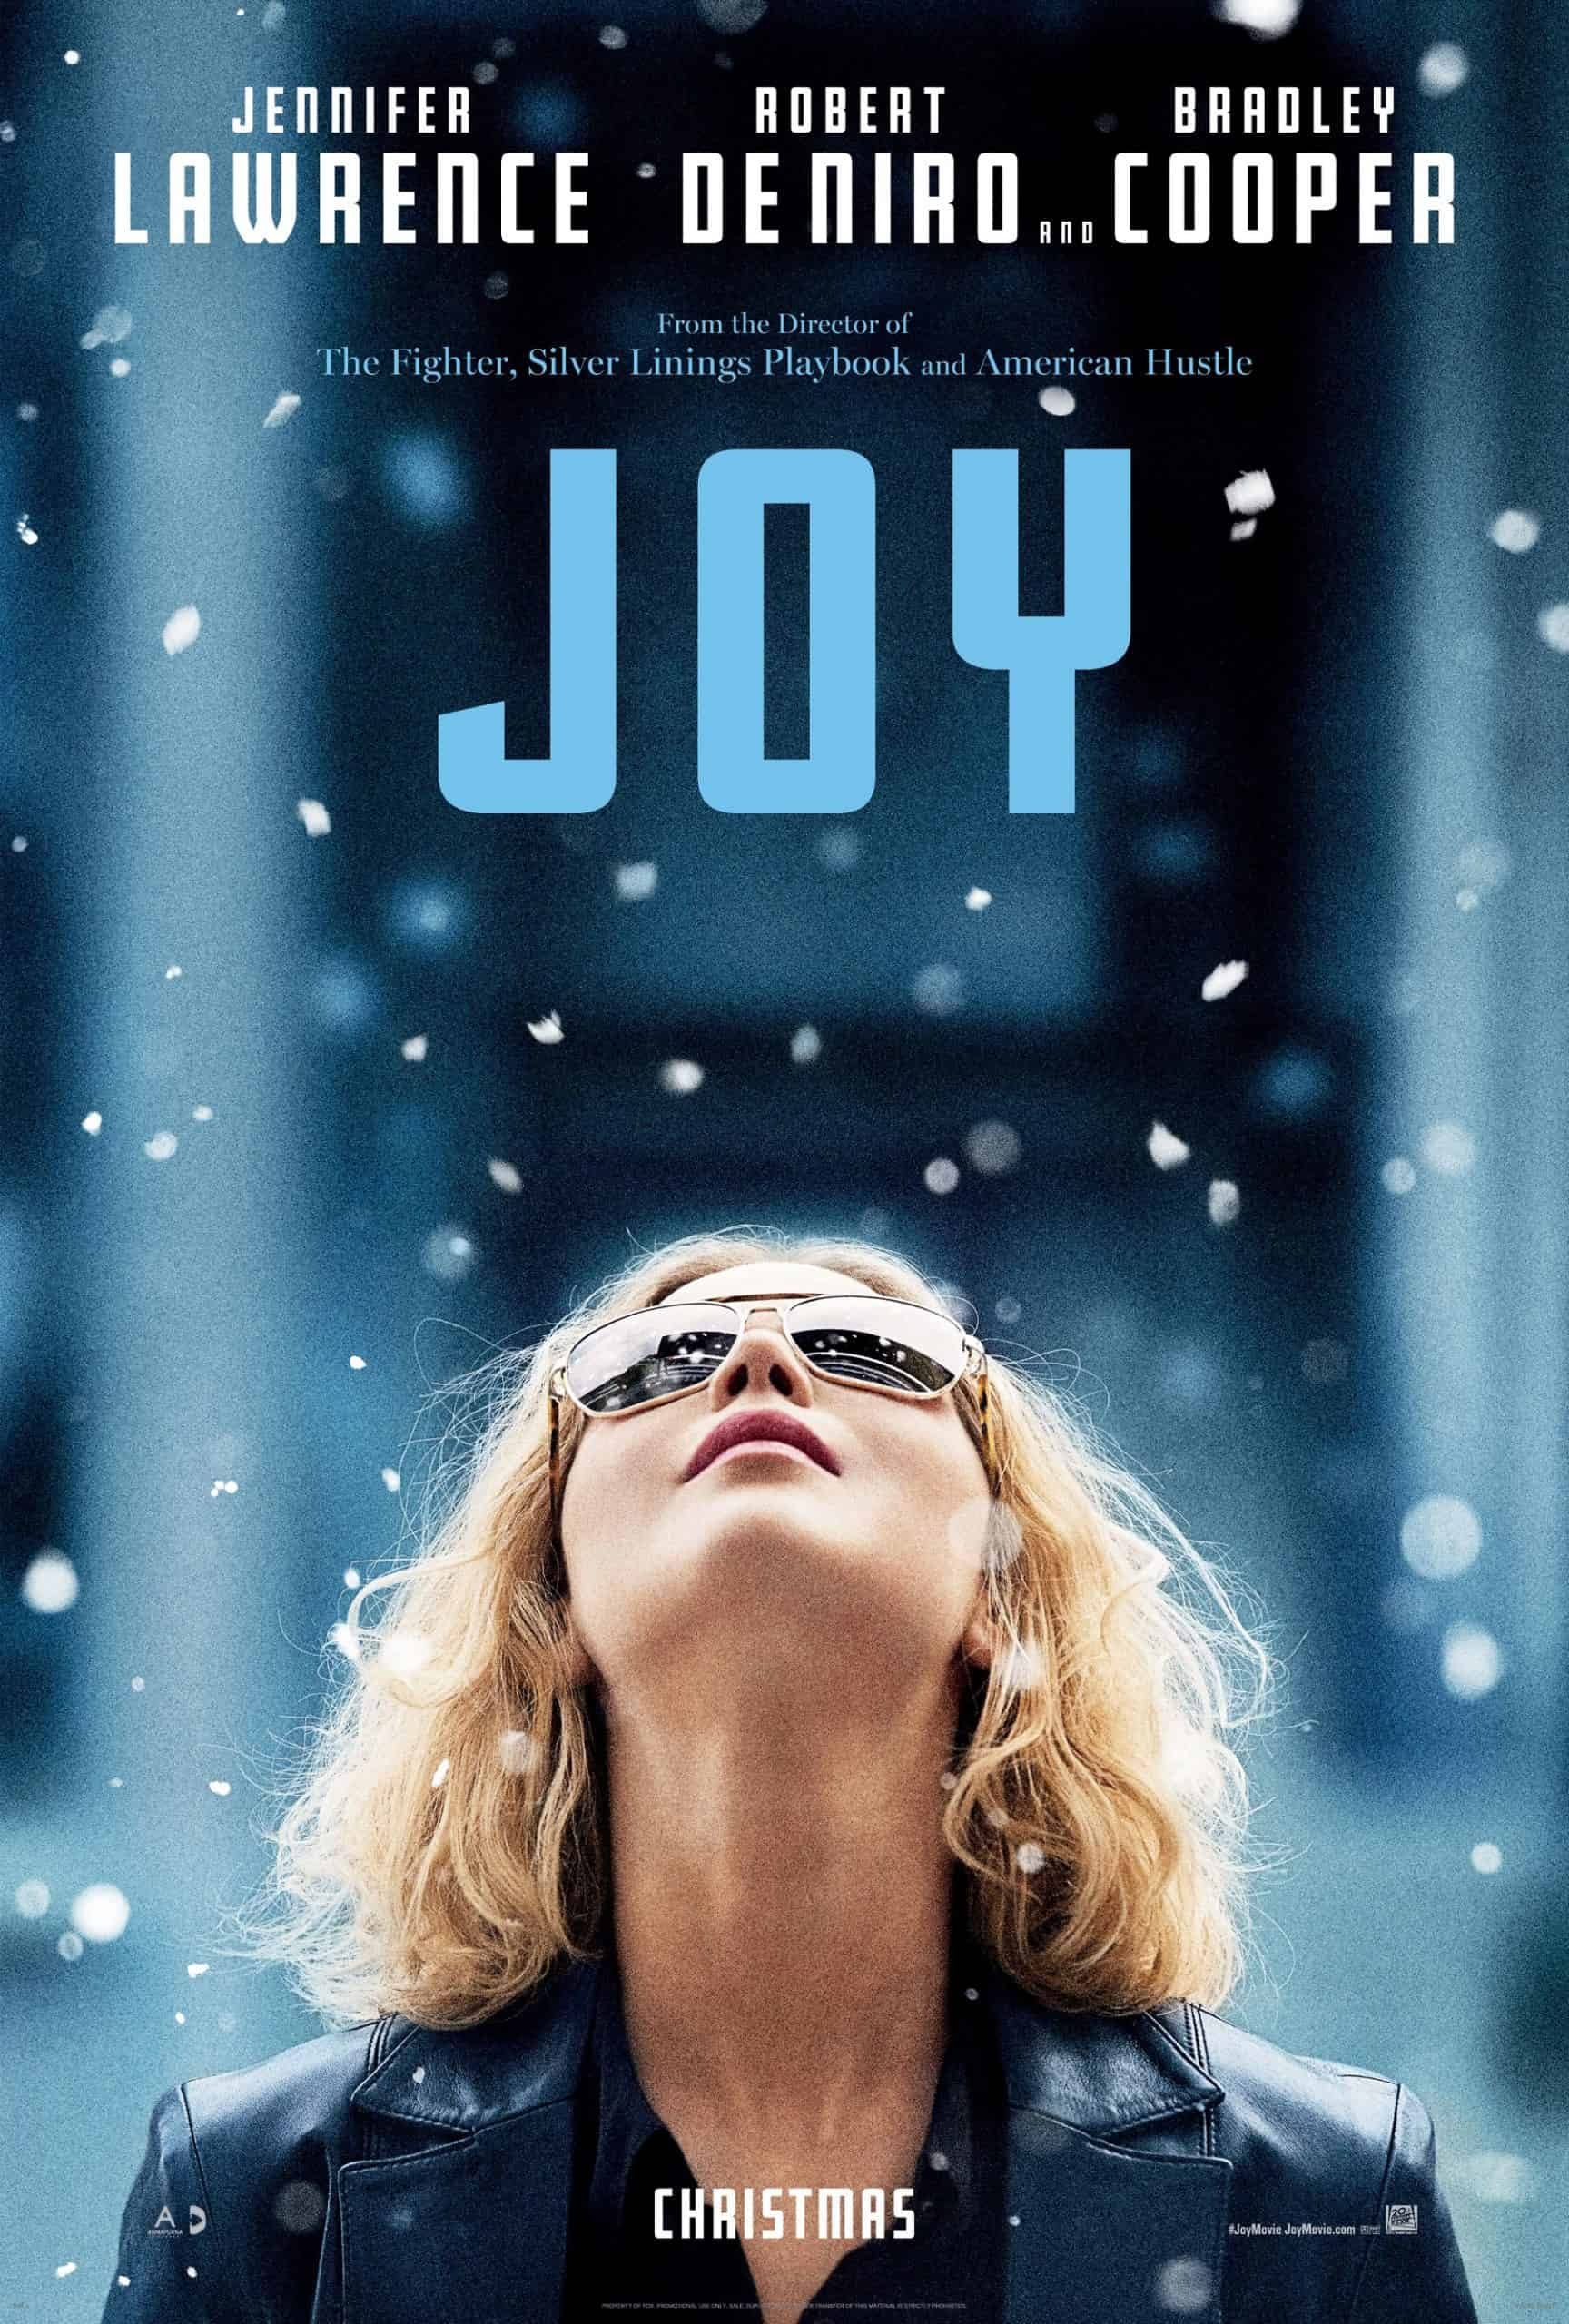 This is the cover photo of the movie Joy. It stars Jennifer Lawrence, Robert DeNiro and Bradley Cooper. It is one of the top inspirational movies for entrepreneurs and startup founders